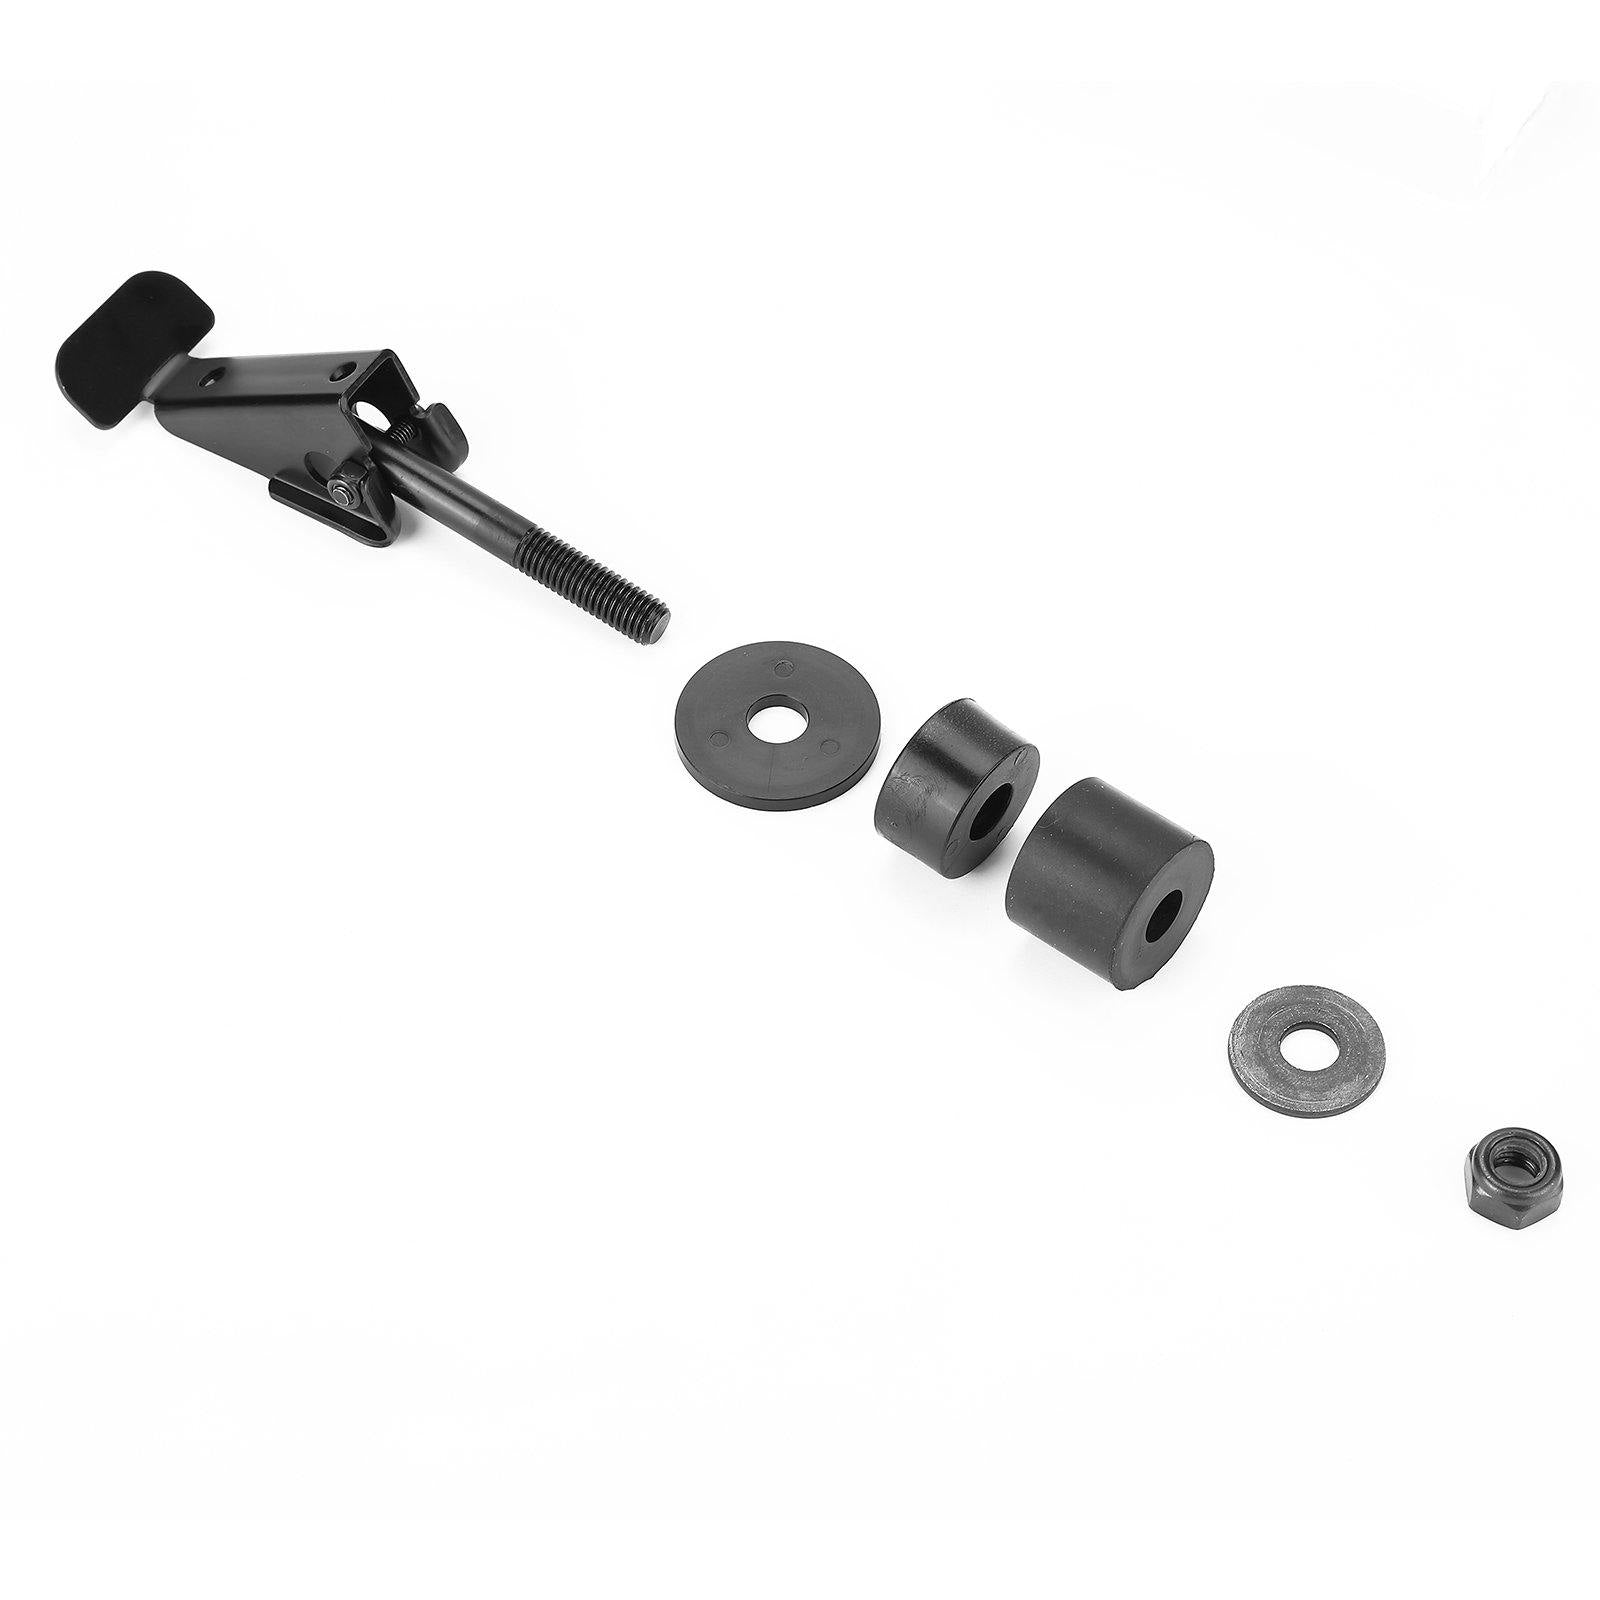 UTV ATV Tie Down Expansion Anchors (4 Pcs) - KEMIMOTO